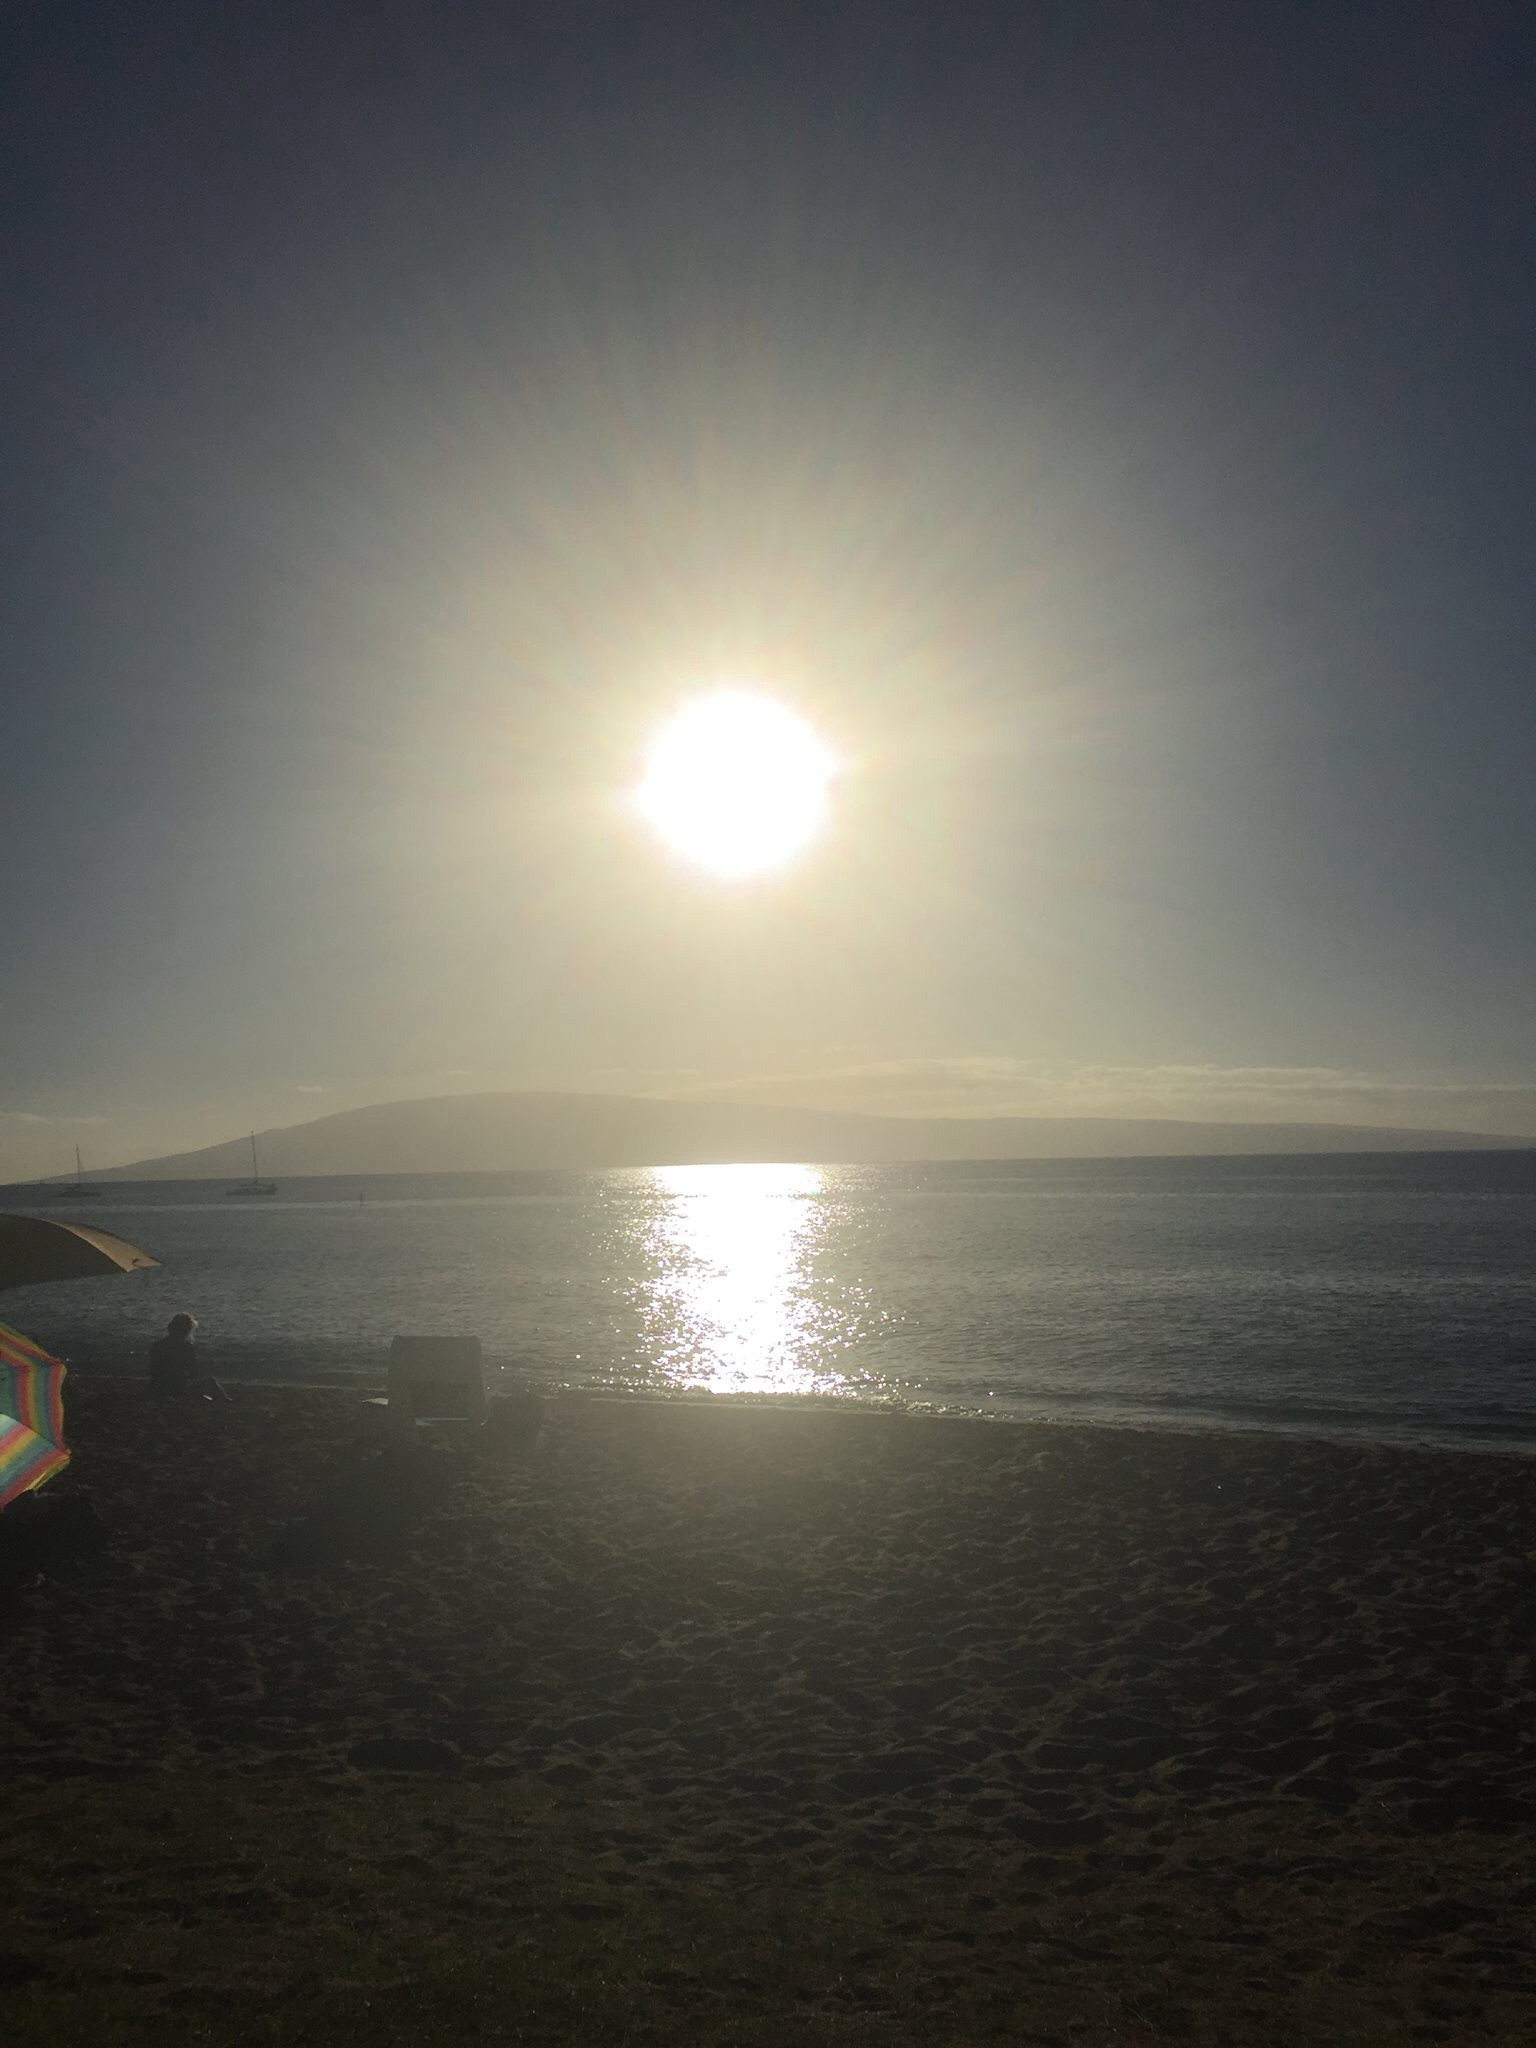 My Uncle's pic from Maui reminded me of Gargantua …